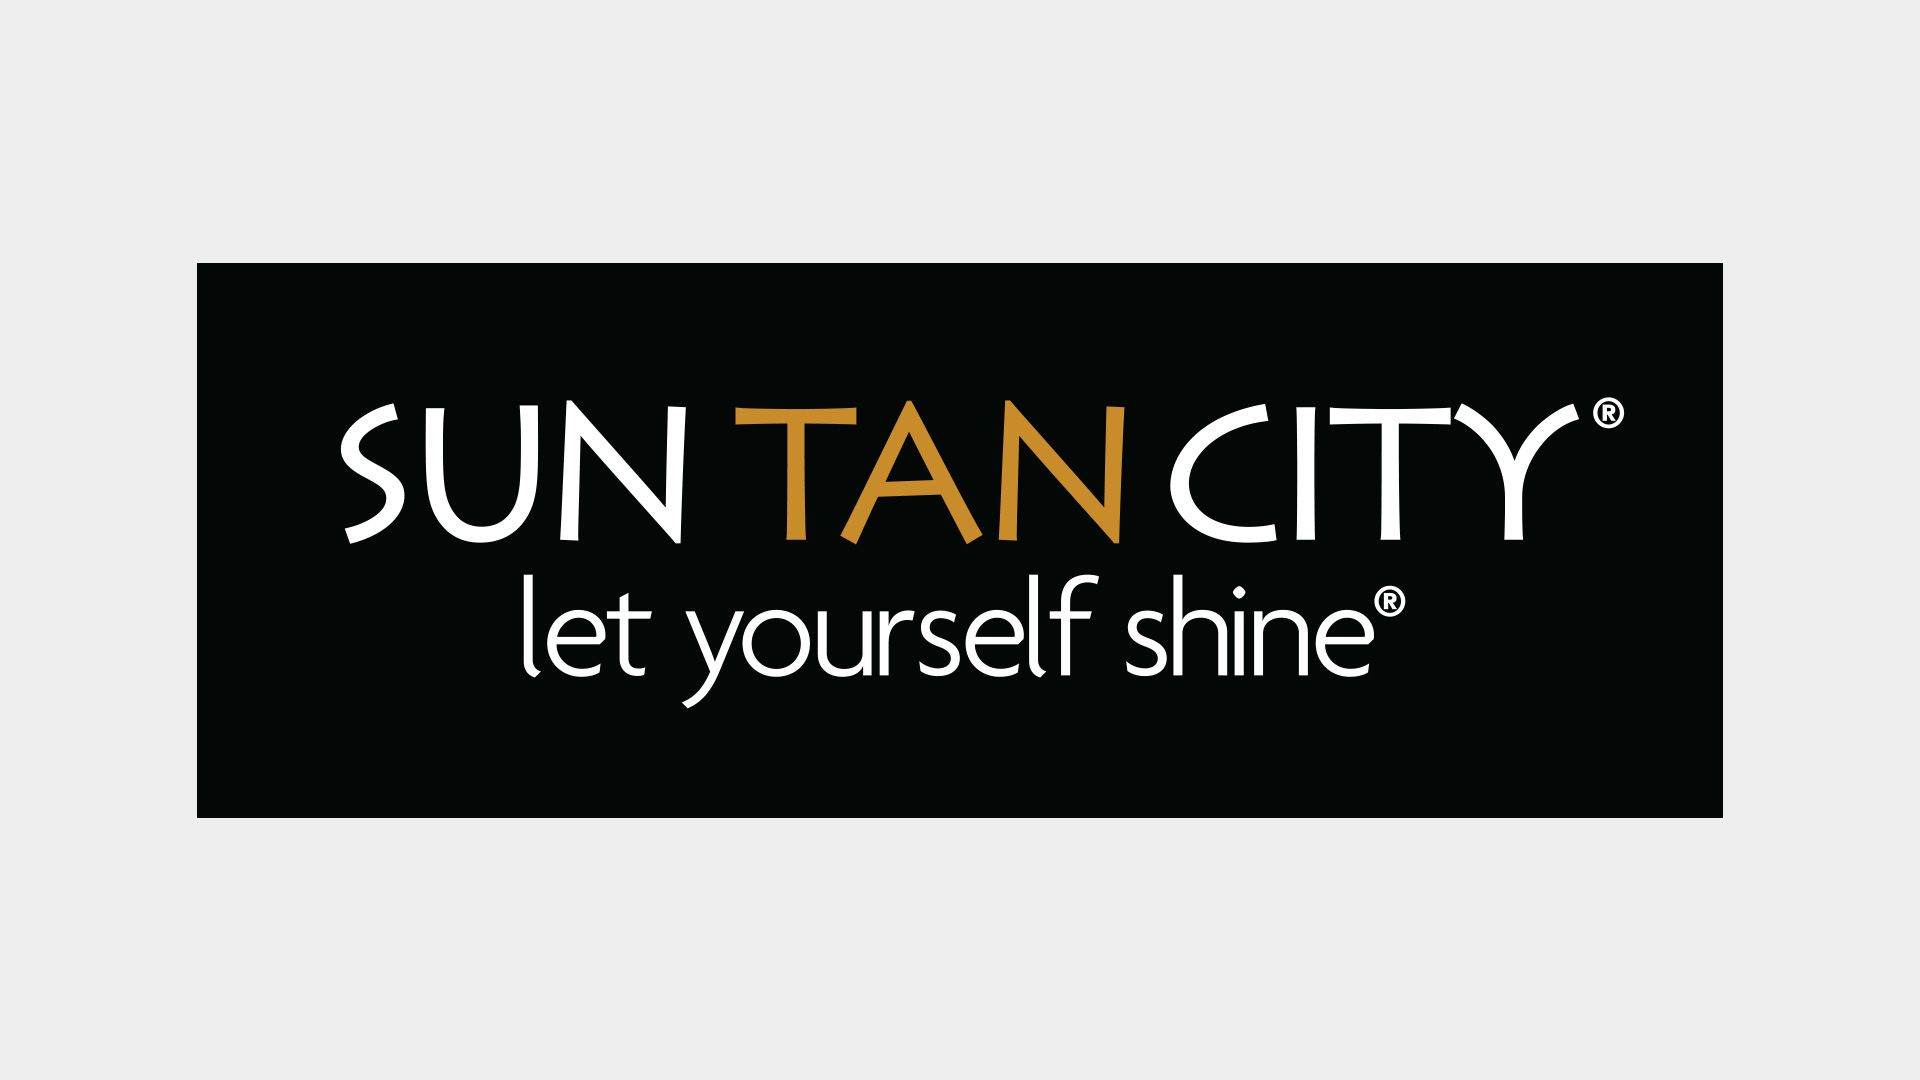 Colts Cheer Sponsor: Sun Tan City, let yourself shine